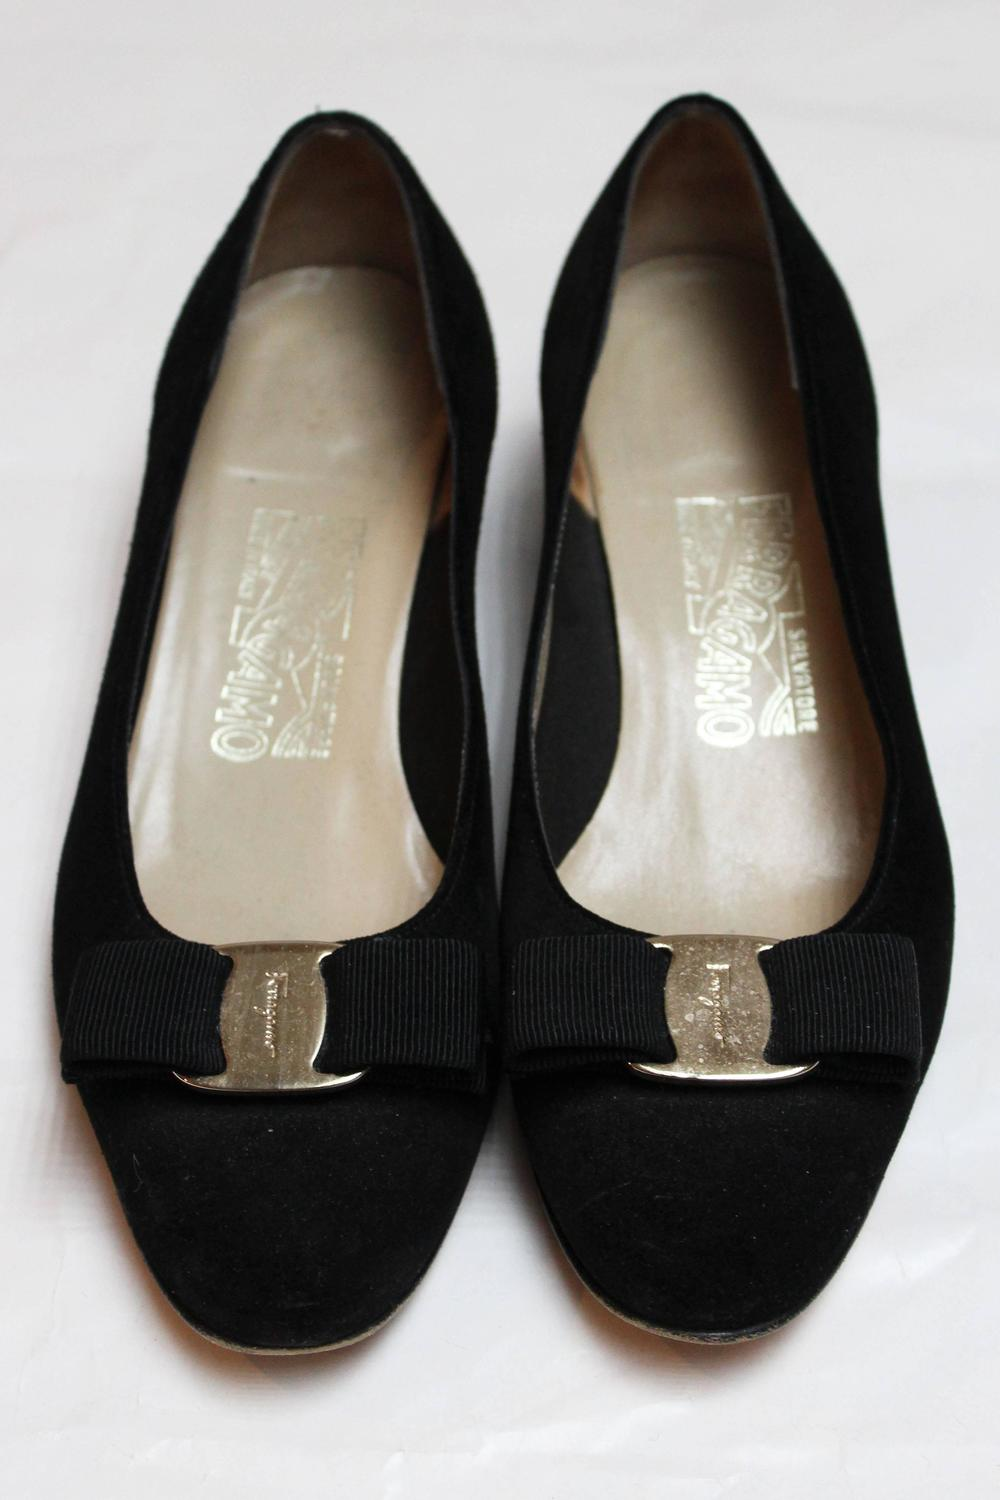 salvatore ferragamo black suede pumps for sale at 1stdibs. Black Bedroom Furniture Sets. Home Design Ideas